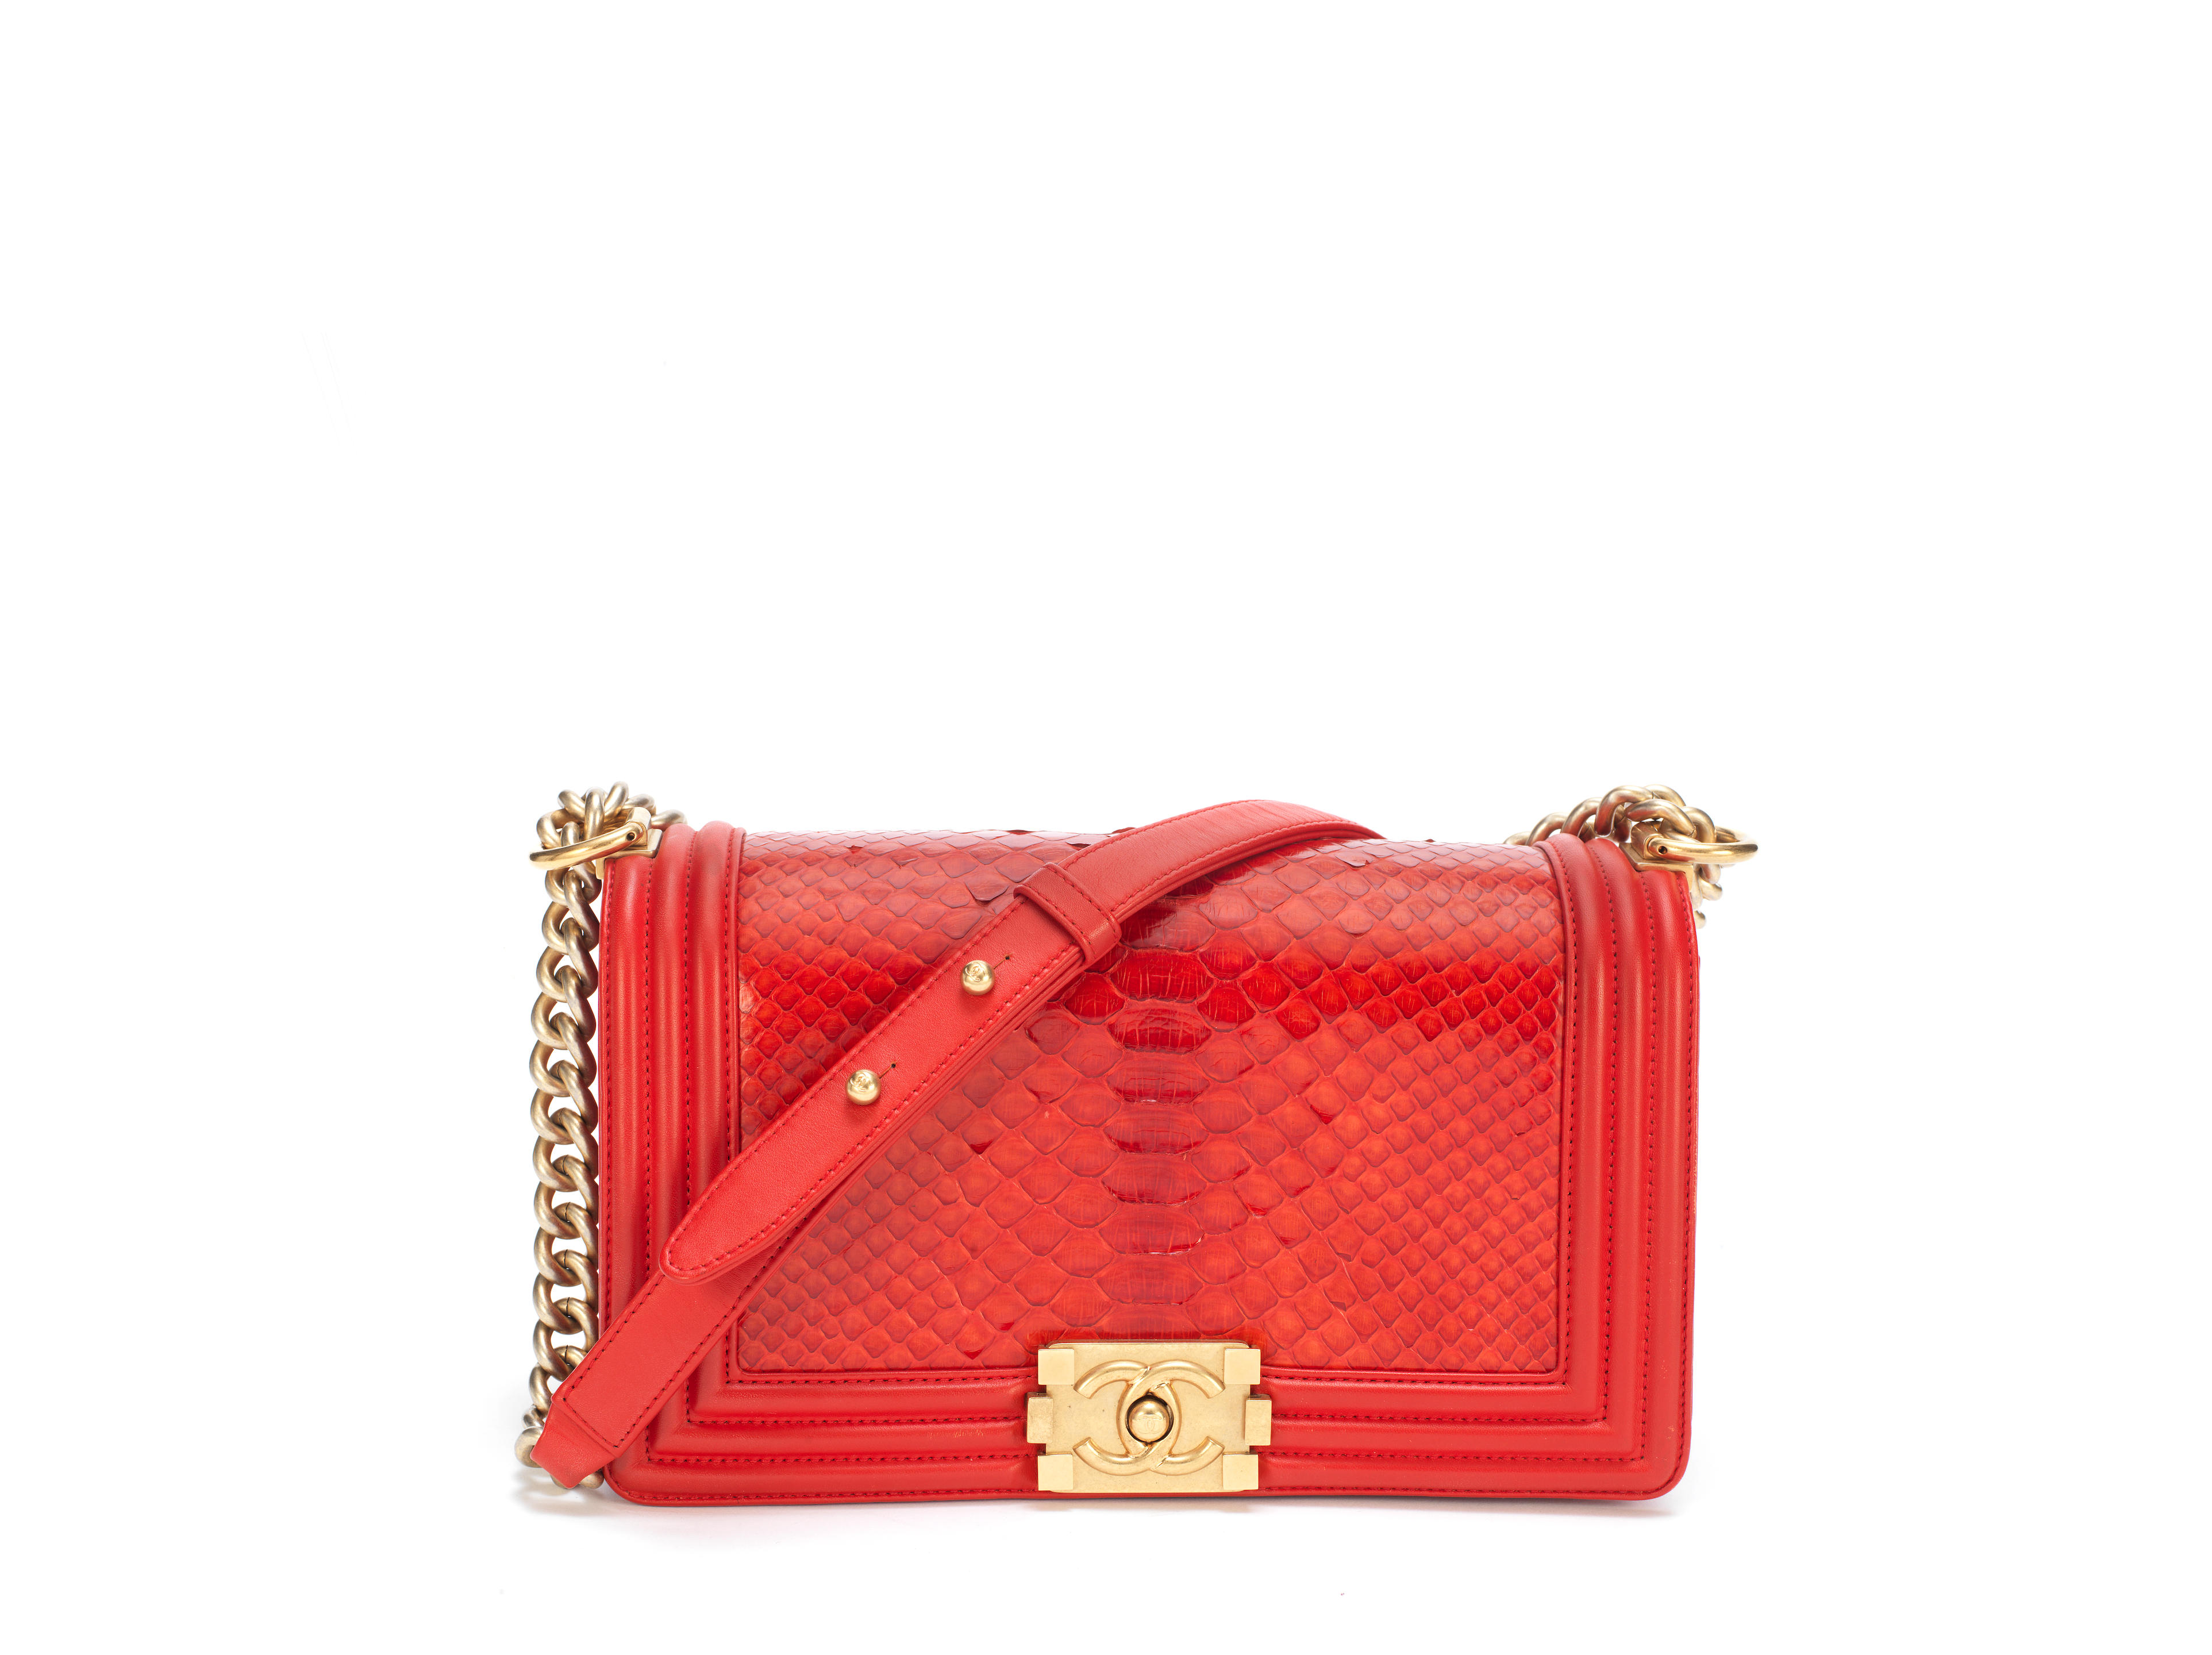 Red Python Medium Boy Bag, Chanel, c. 2014, (Includes serial sticker, authenticity card, dust bag and box)